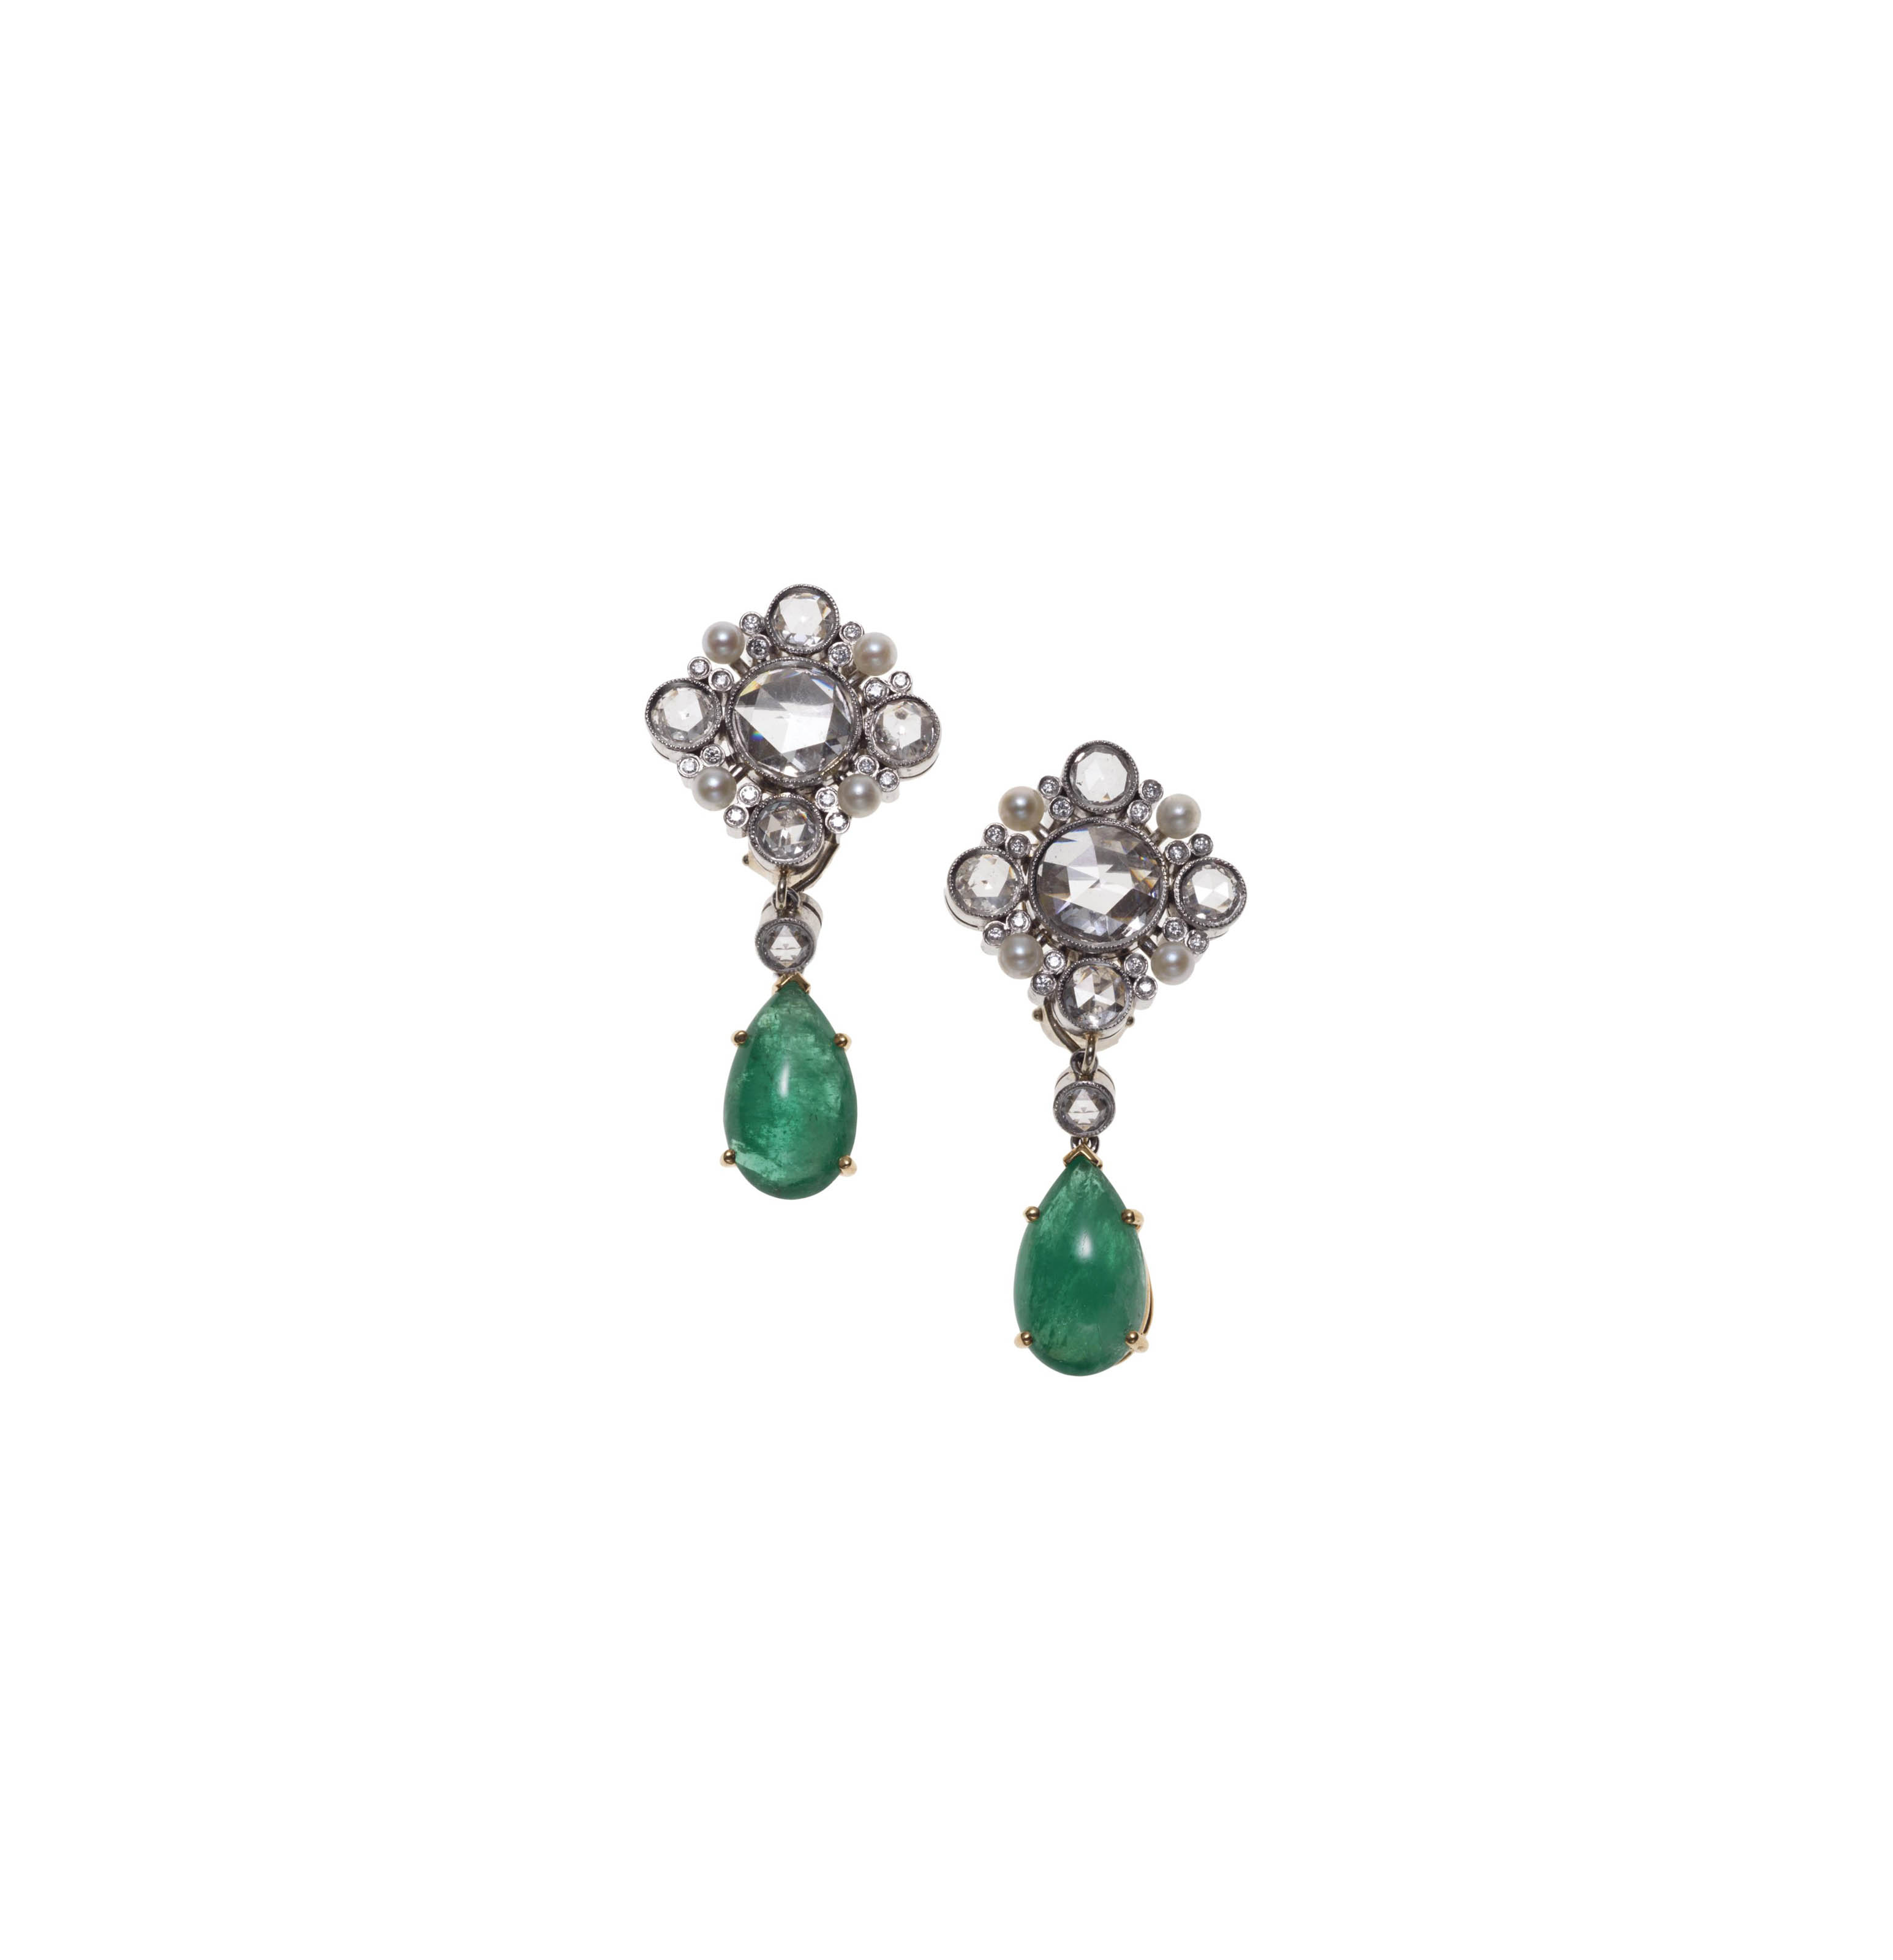 A PAIR OF EMERALD, DIAMOND AND SEED PEARL EAR PENDANTS, BY JULIUS COHEN